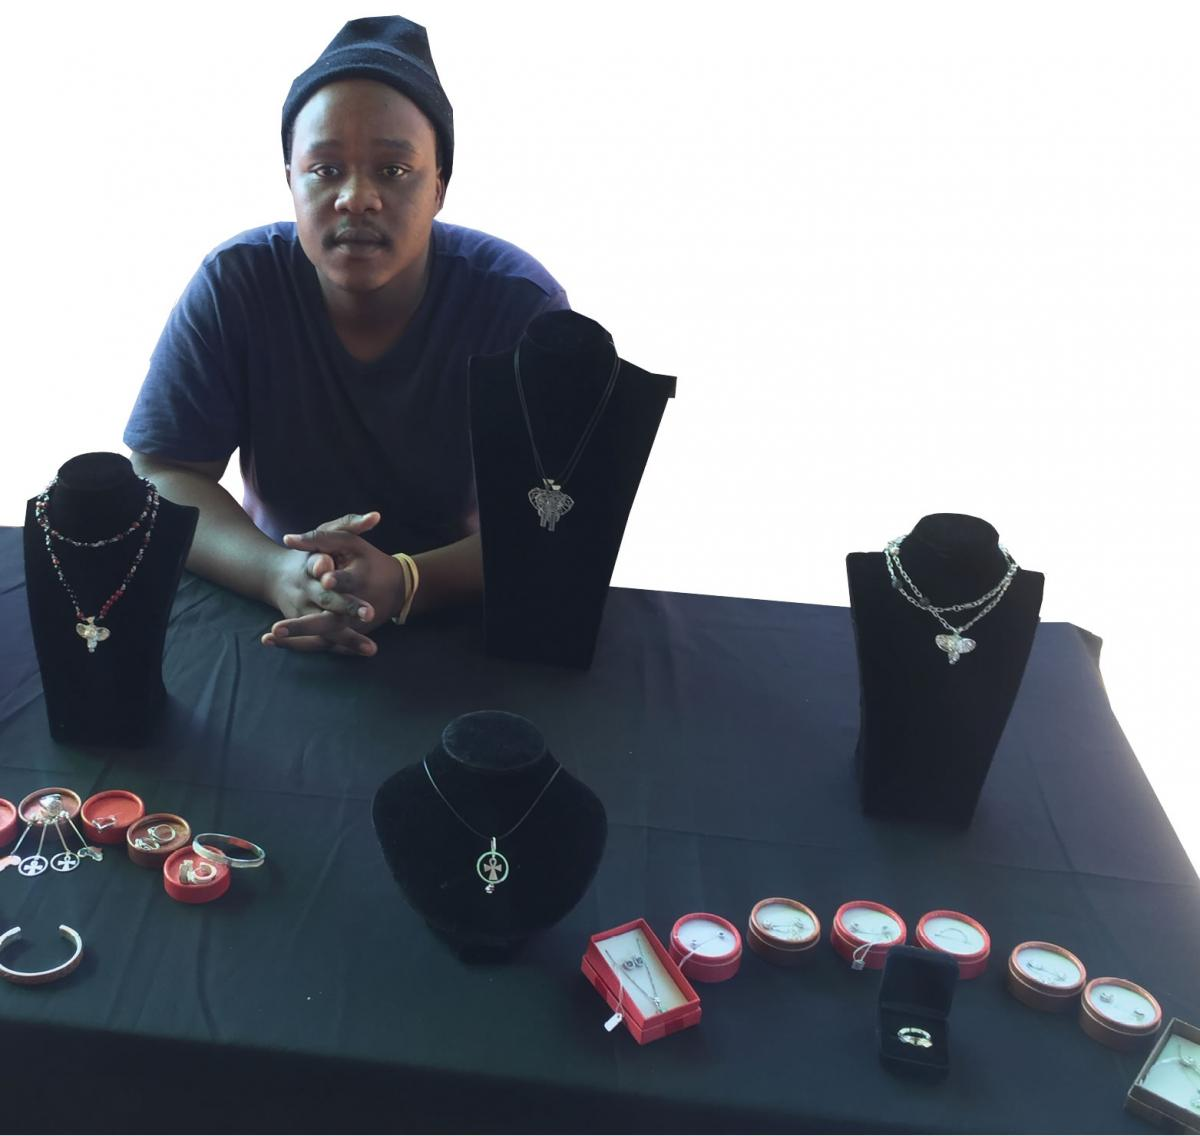 Owner of KG Jewellery Kgaugelo Molope with some of his jewellery.